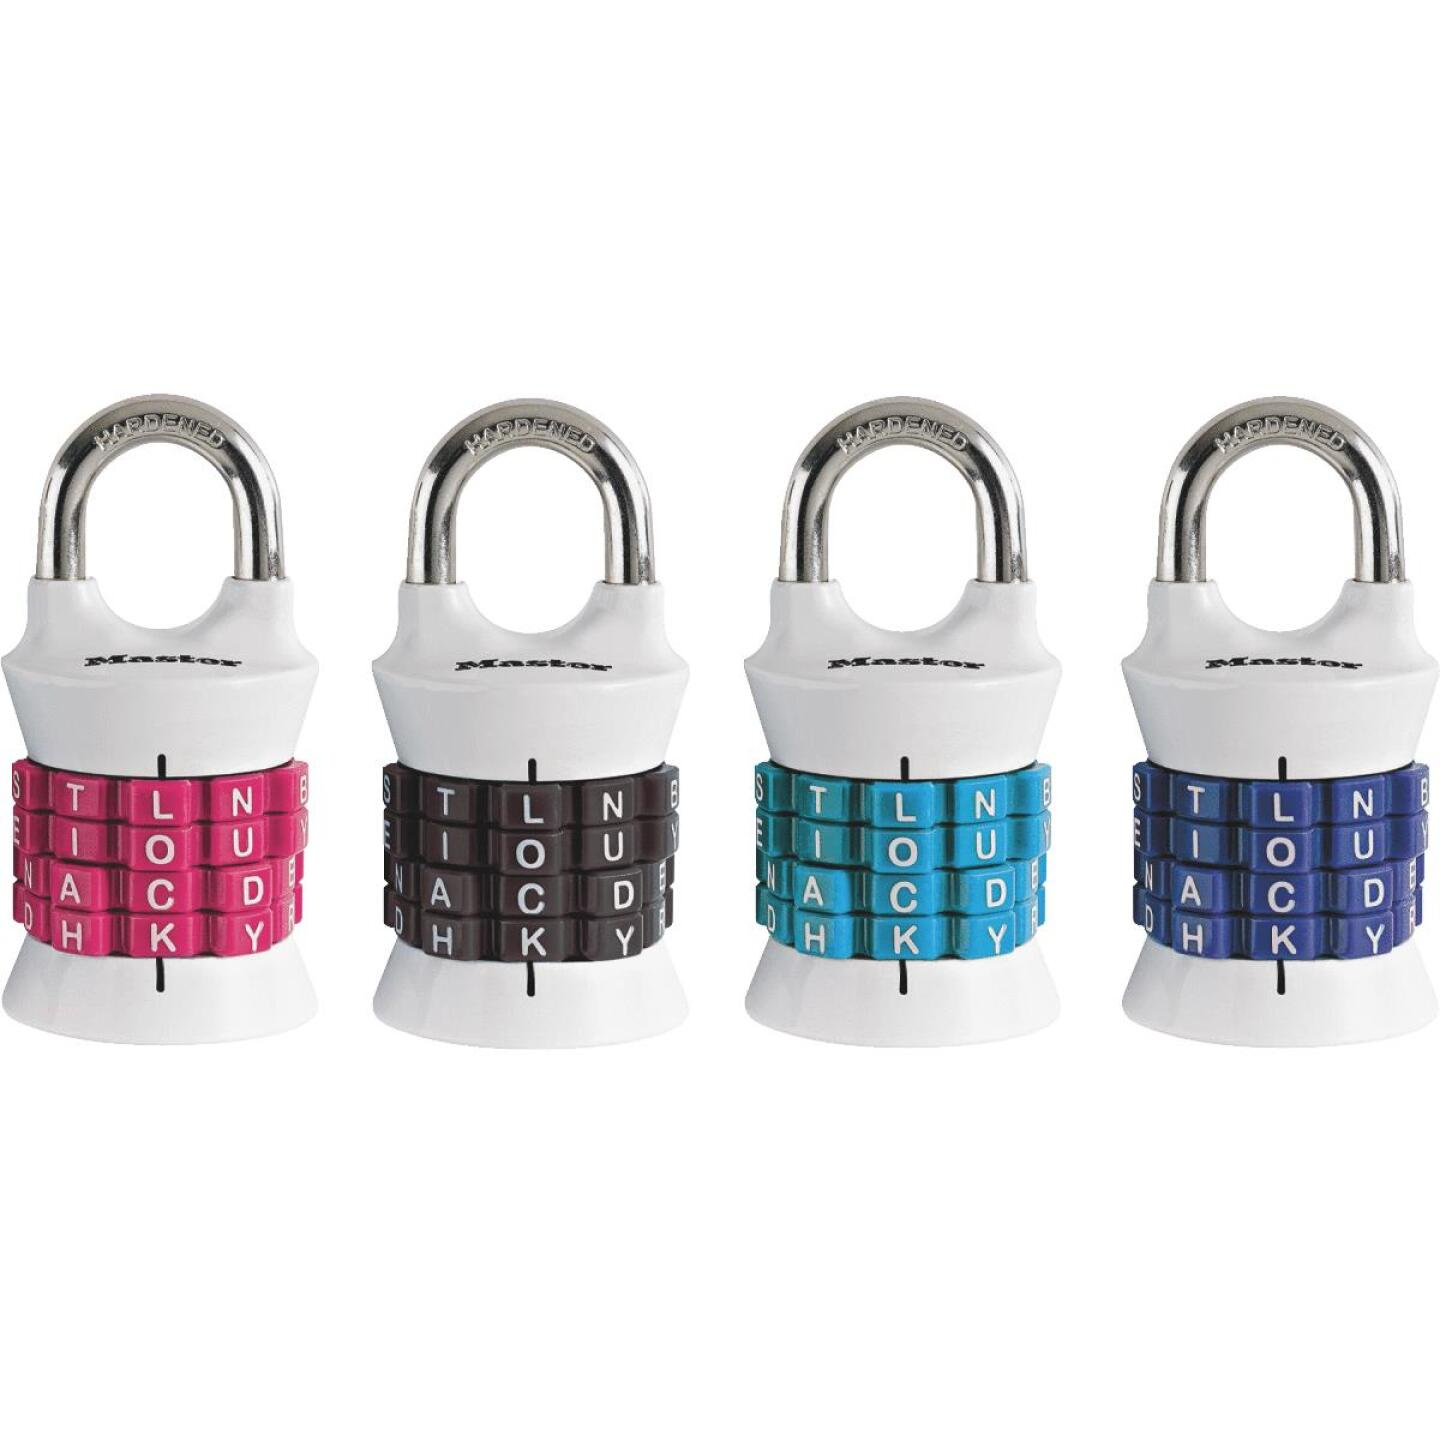 Master Lock 1-1/2 In. Zinc Alpha Barrel Combination Padlock Image 1